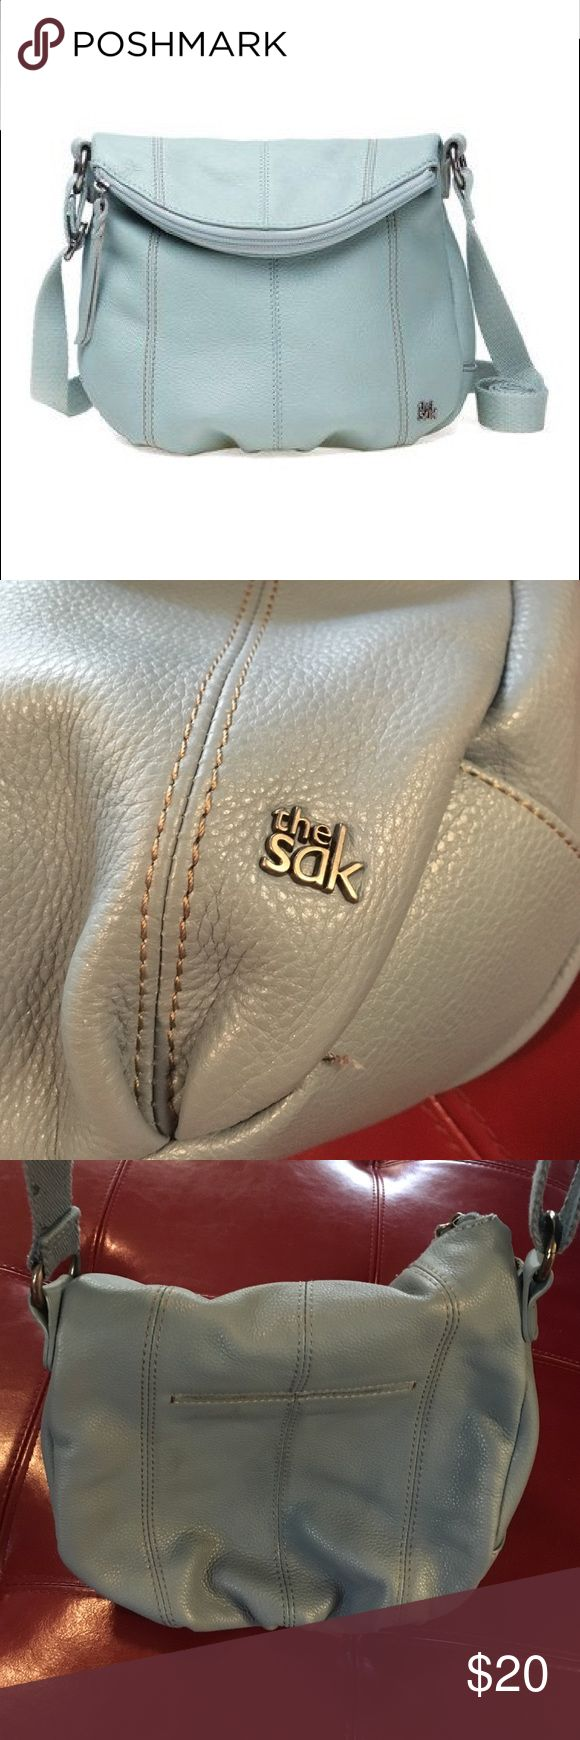 The SAK  Crossbody bag perfect for festivals Genuine leather Crossbody bag made by the sack perfect for festivals. Multiple inside pockets including zip in and zip pockets second opening for additional storage plus easy slide on back to reach phone The Sak Bags Crossbody Bags